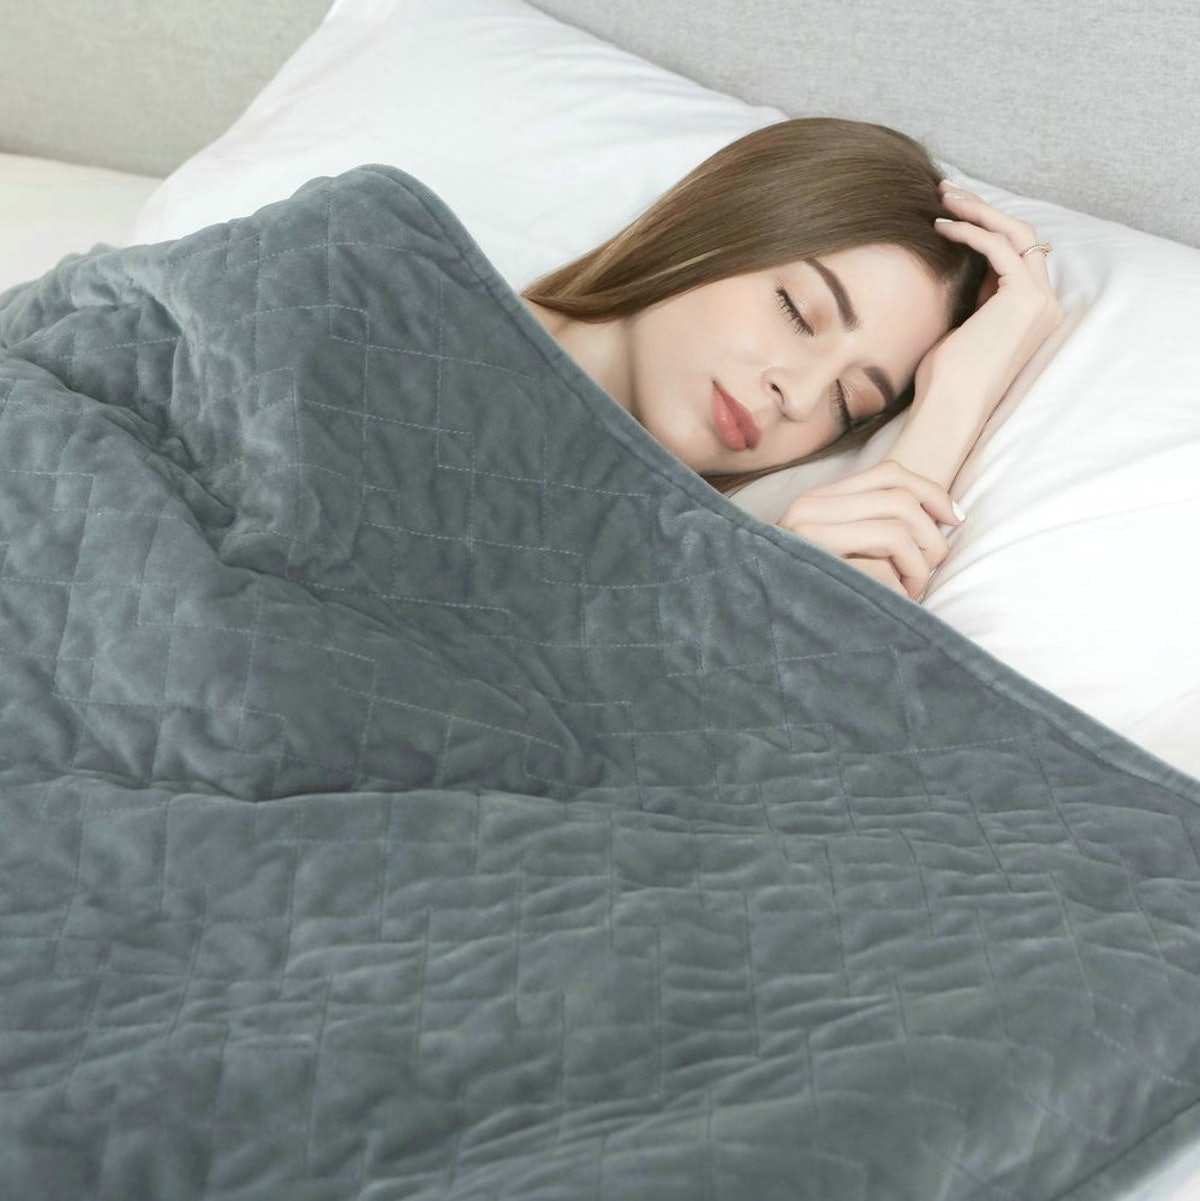 Do Weighted Blankets Work? This Is How They Can Help Anxiety, Insomnia, & Other Issues